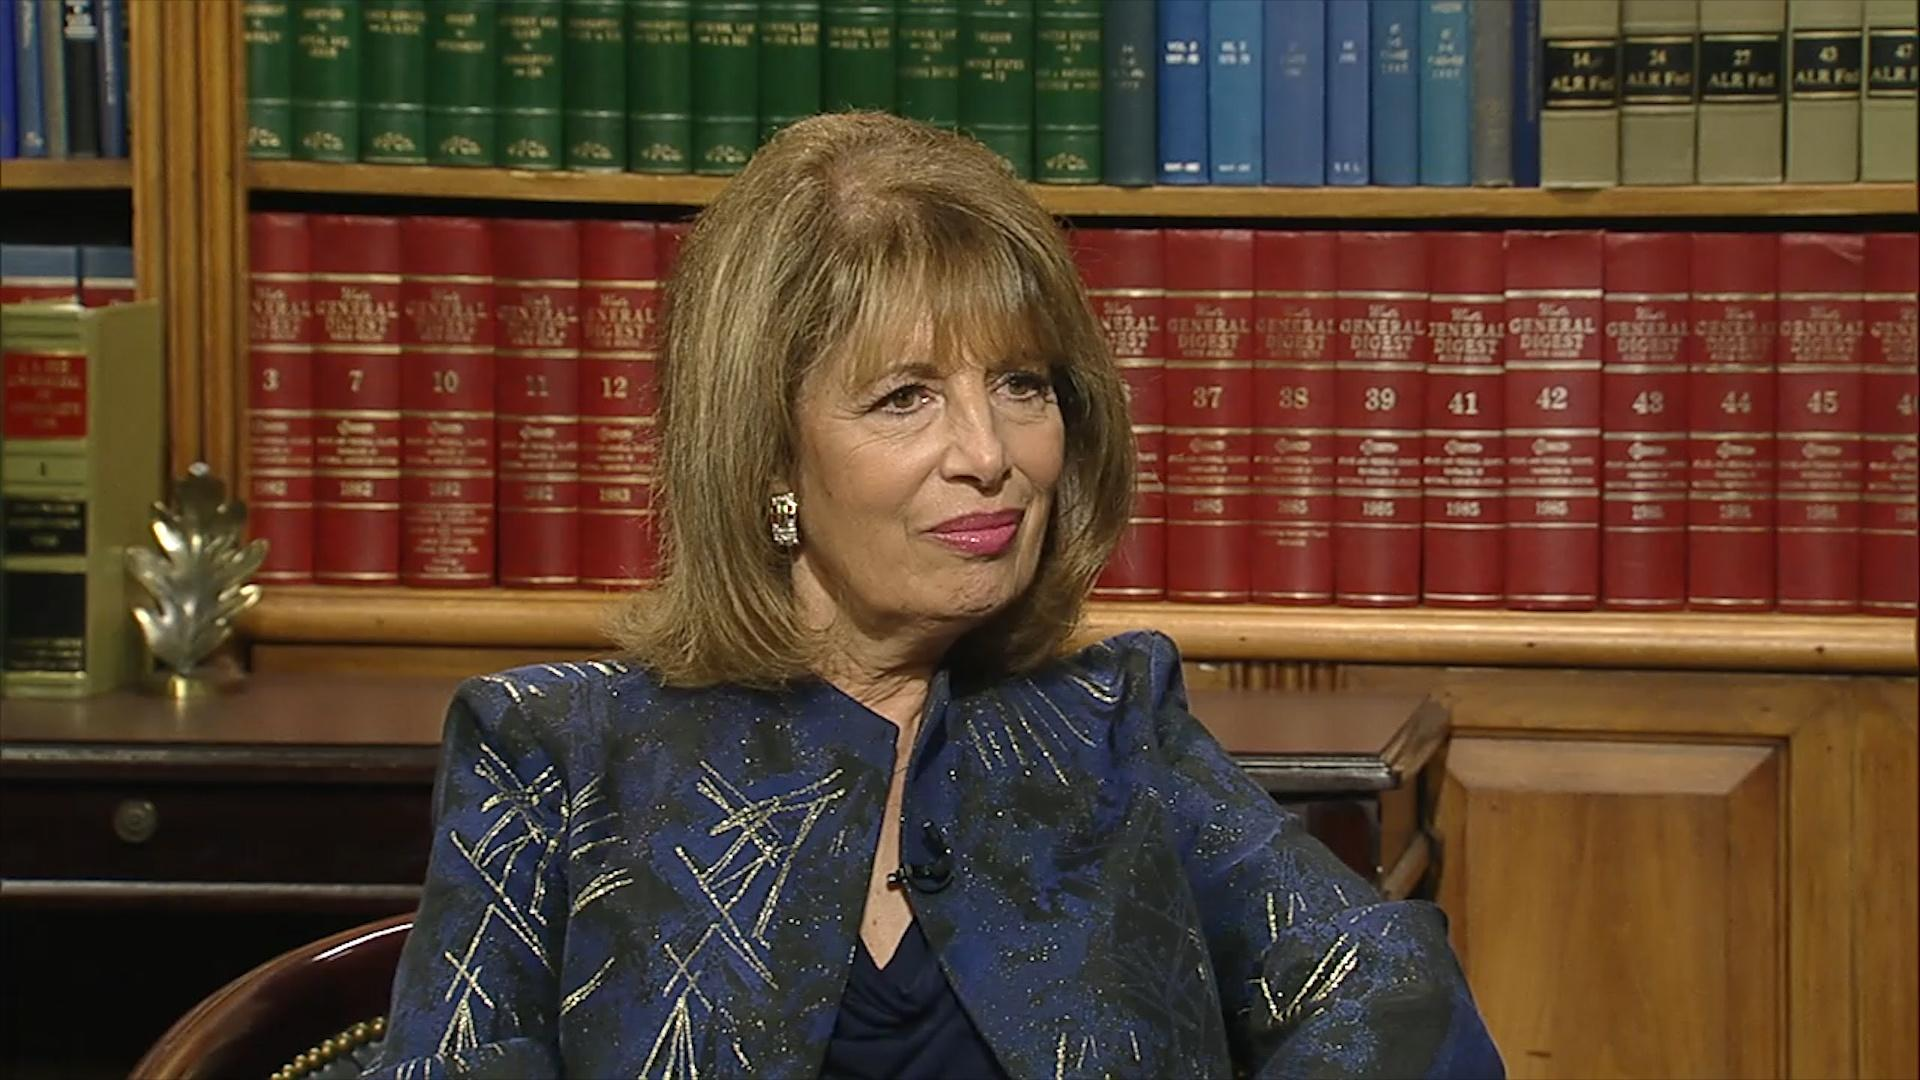 TTC Extra: Rep. Speier & Contraception in the Military